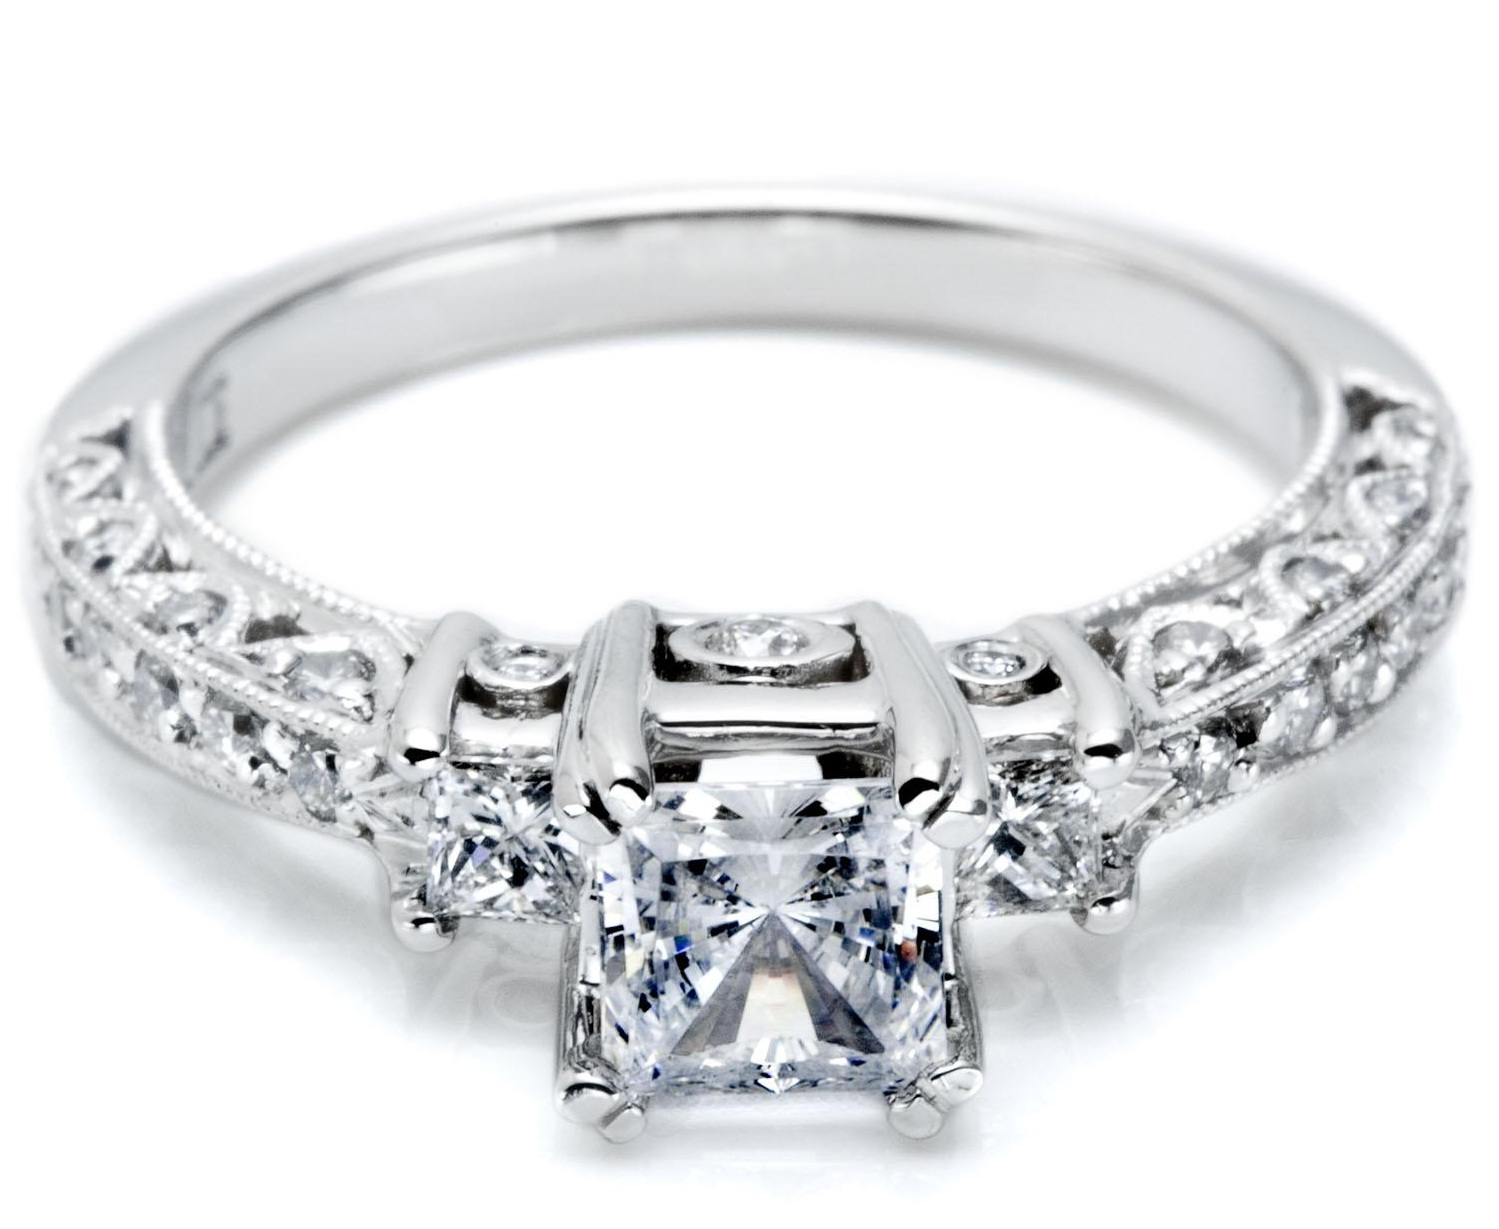 Platinum Rings for Women  New Designed  Beautyhealth and fashion